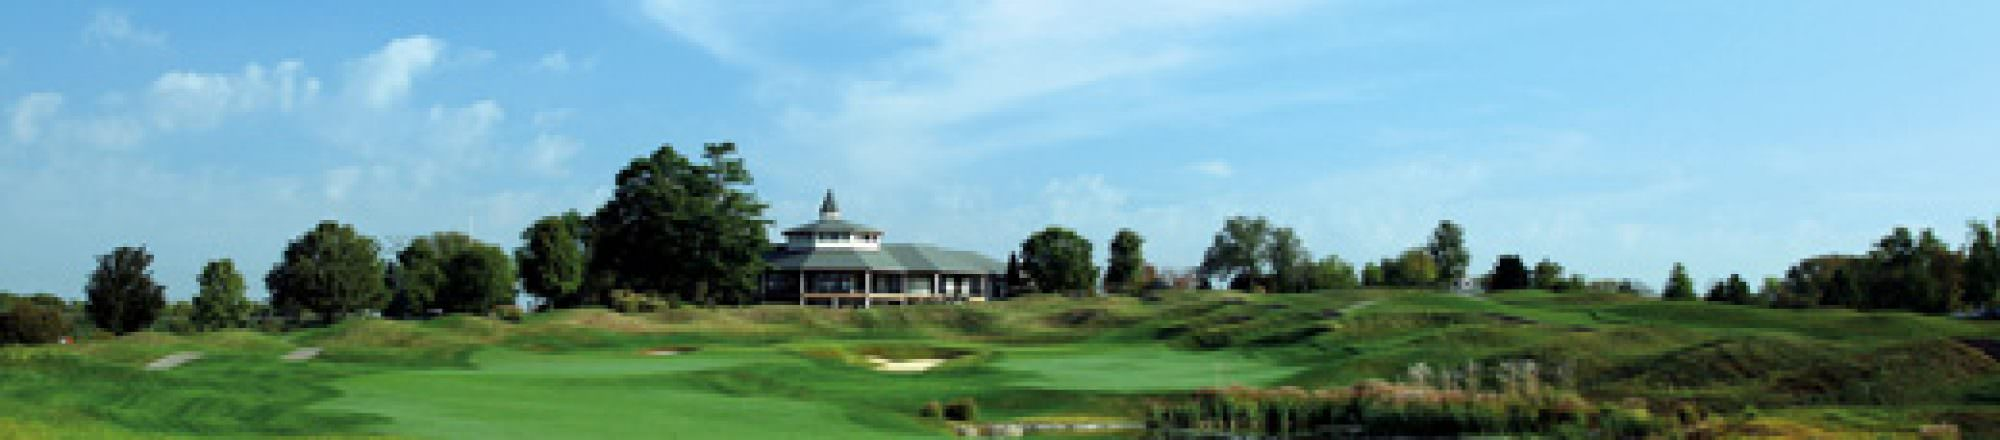 The US PGA Championship: What to expect at Valhalla